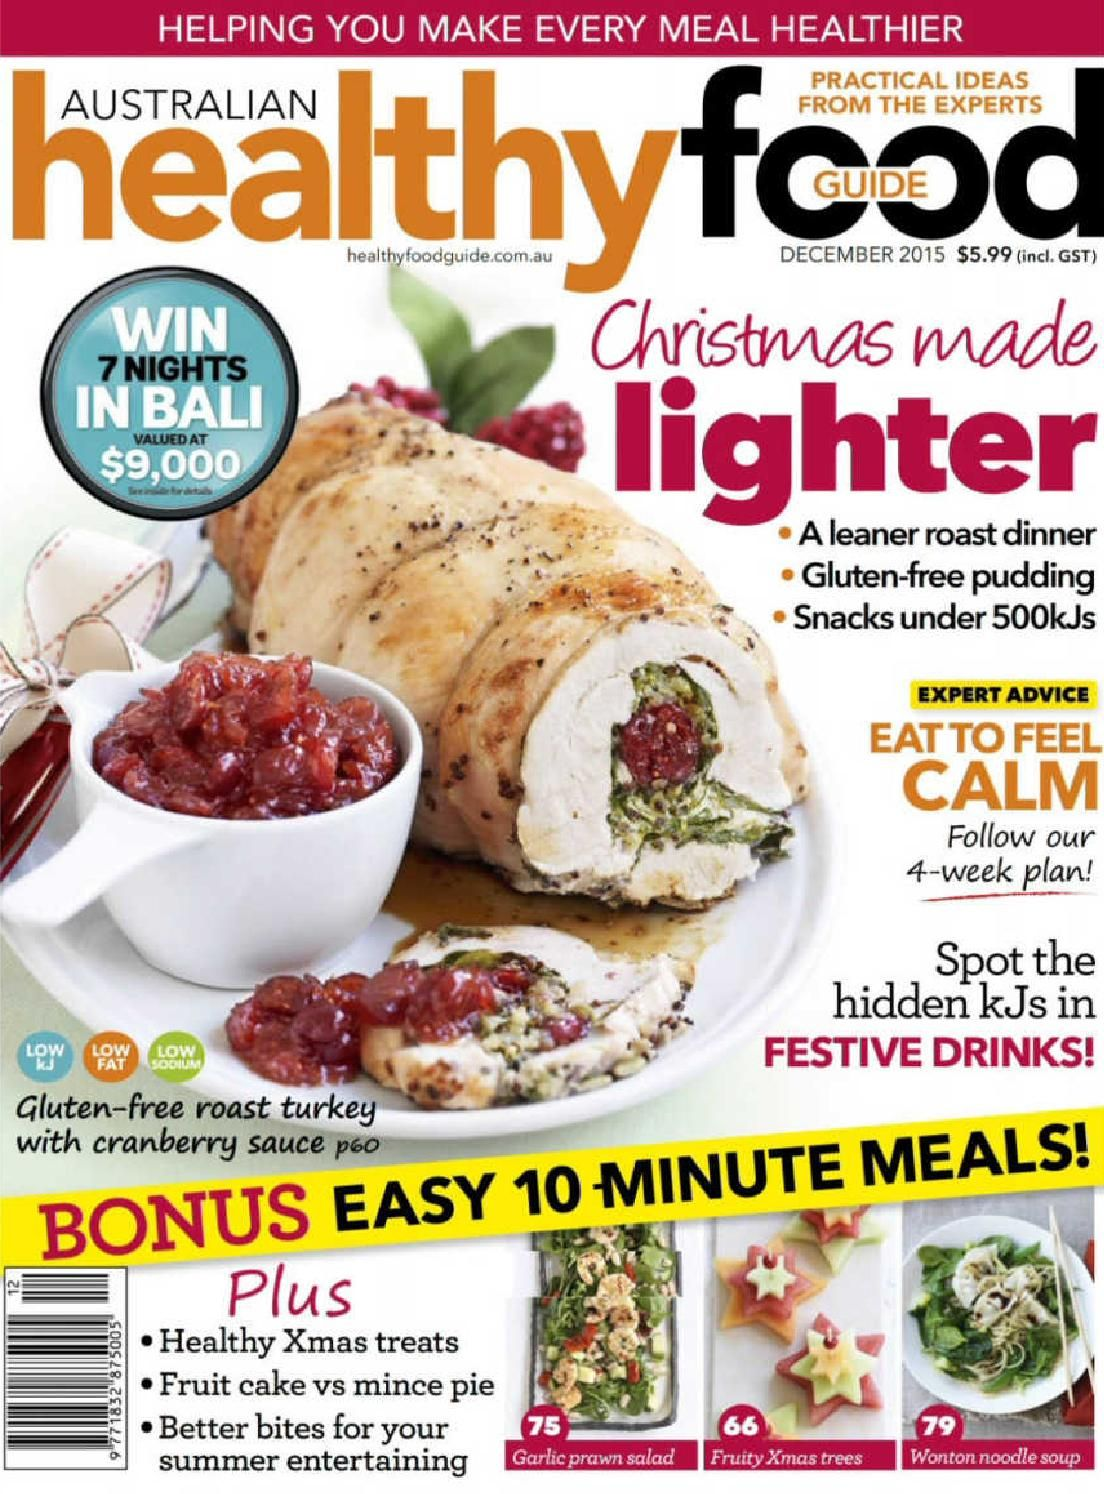 Healthy food guide december 2015 au by cky2kbg issuu books food healthy food guide forumfinder Image collections